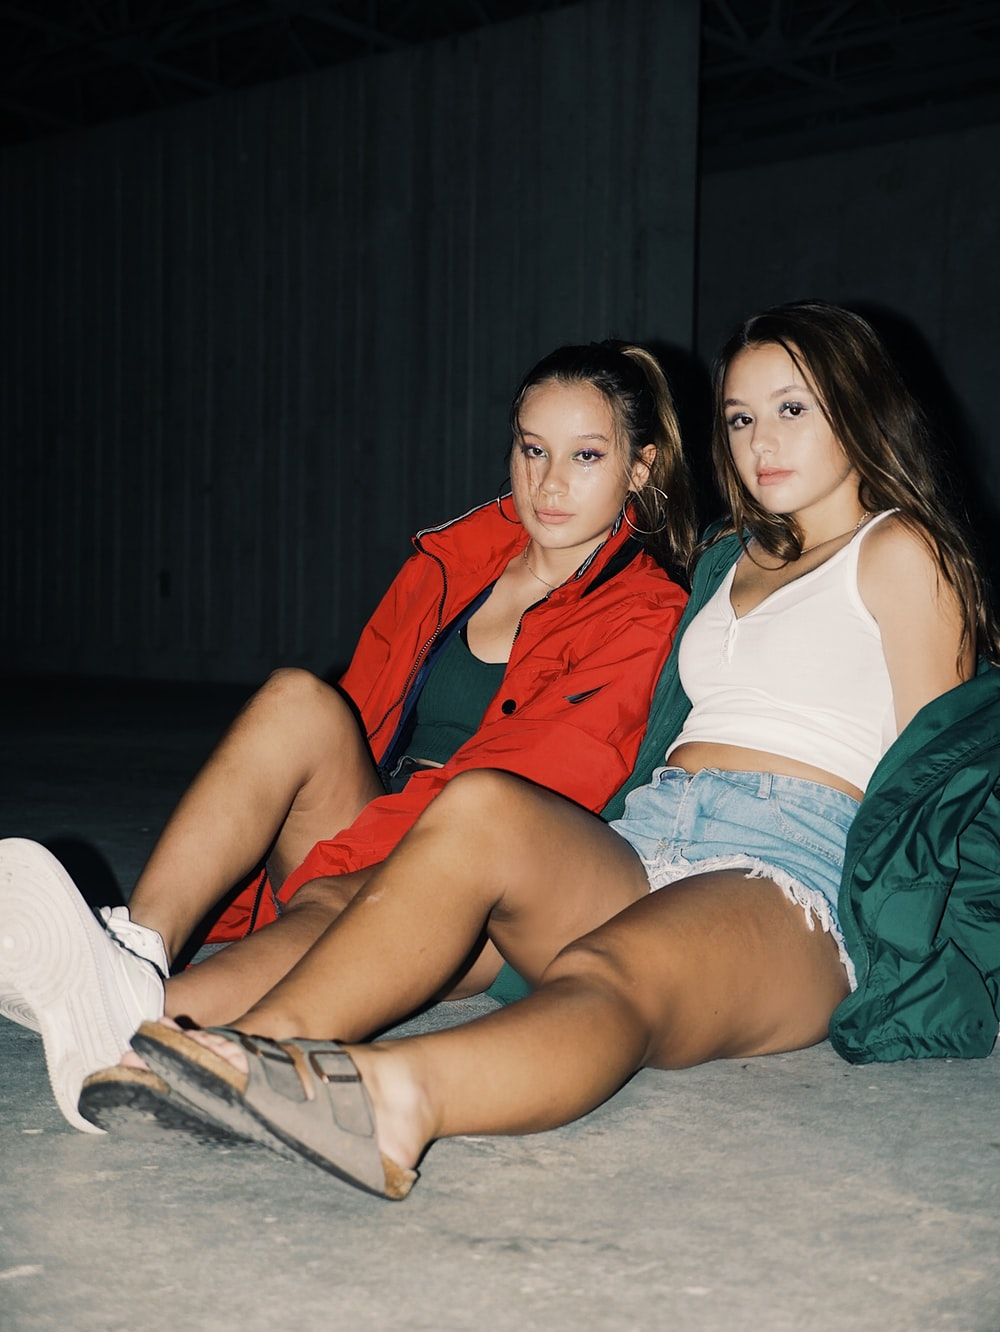 2 women sitting on floor